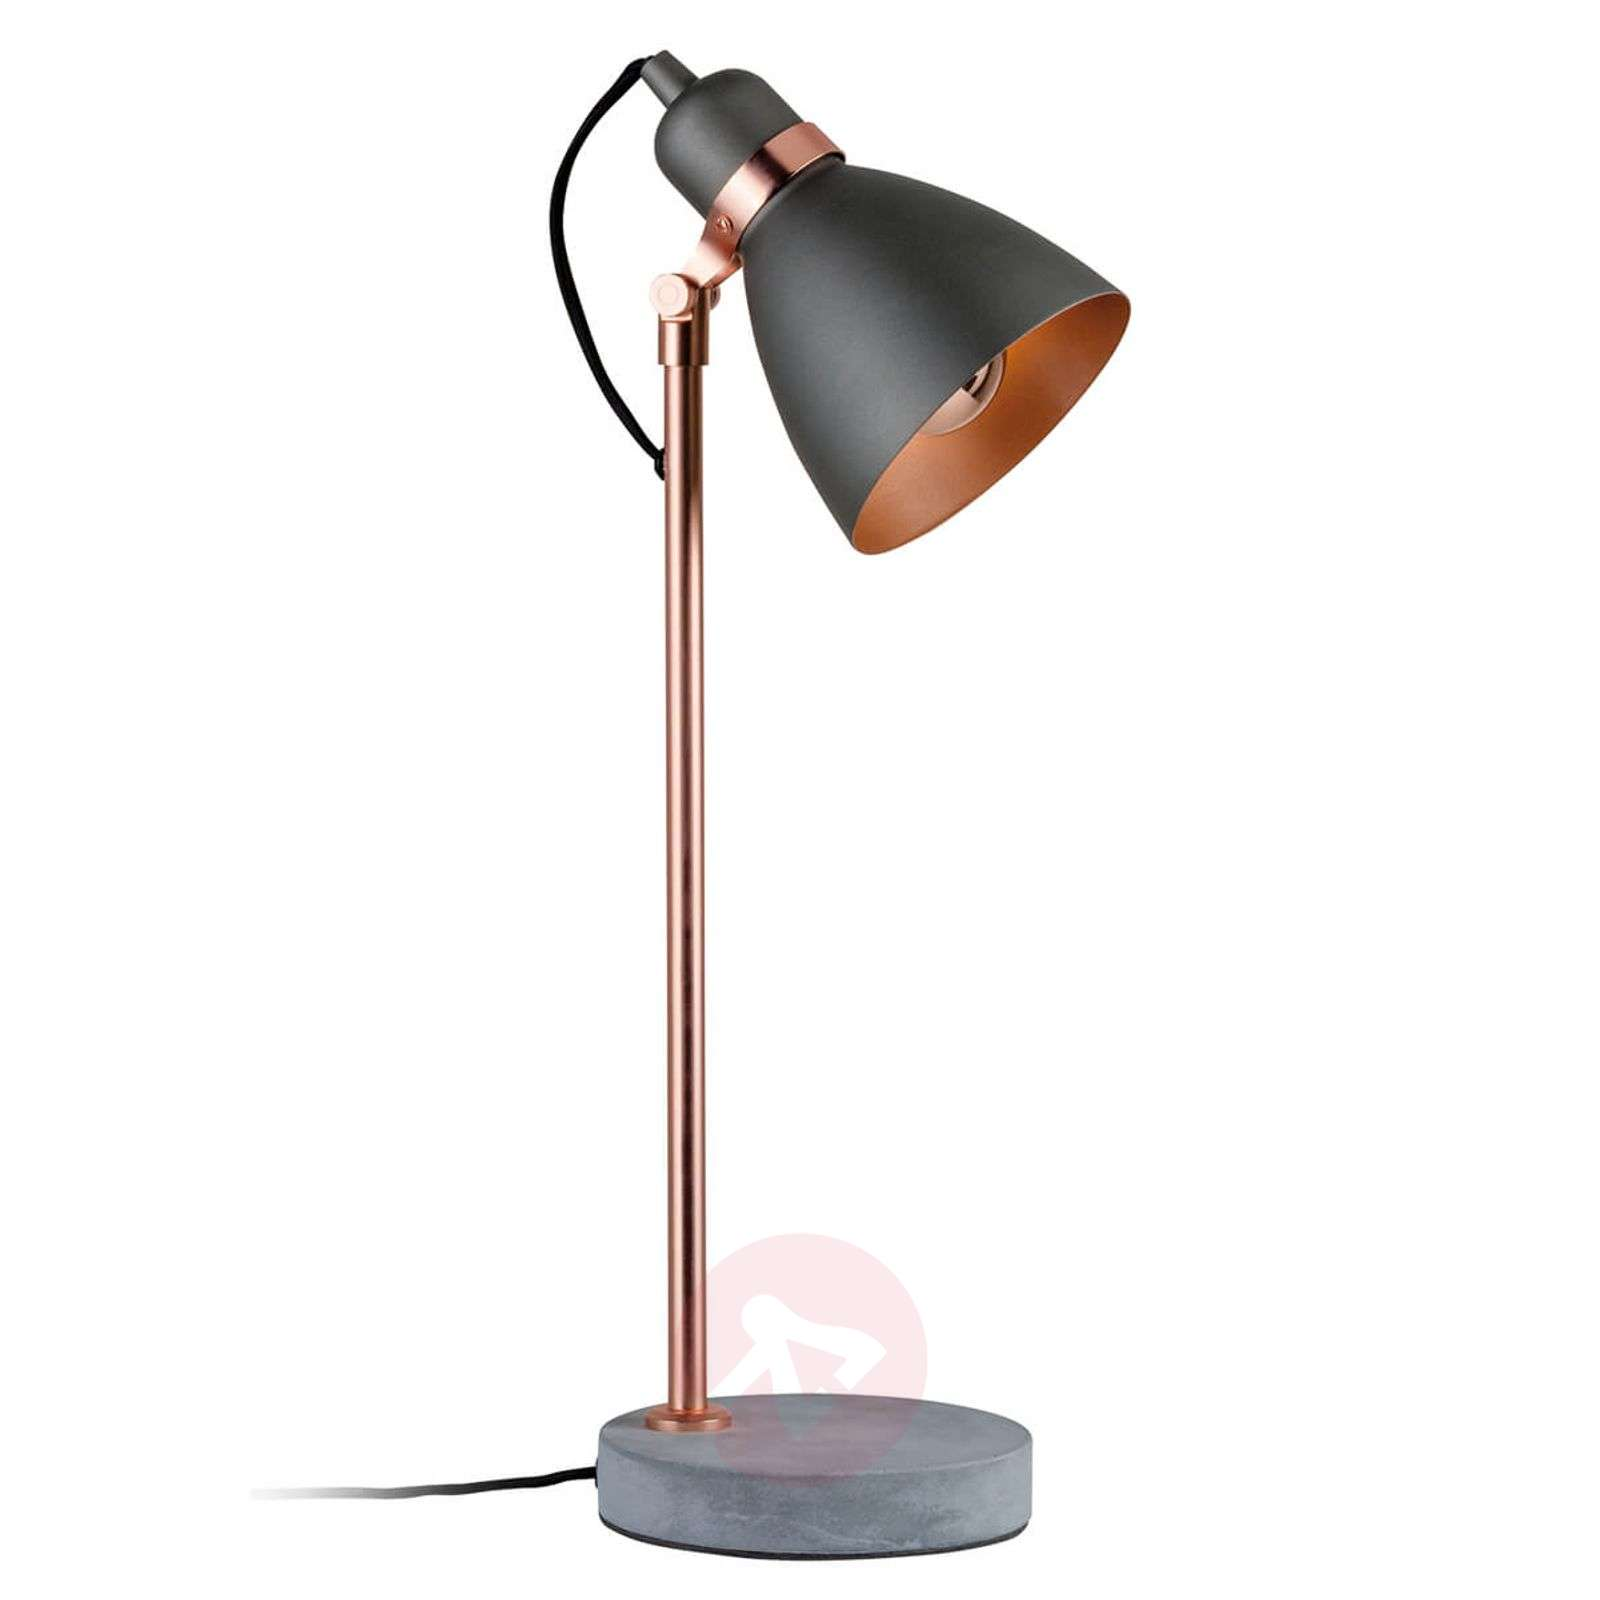 Modern table lamp Orm with concrete base-7601037-01